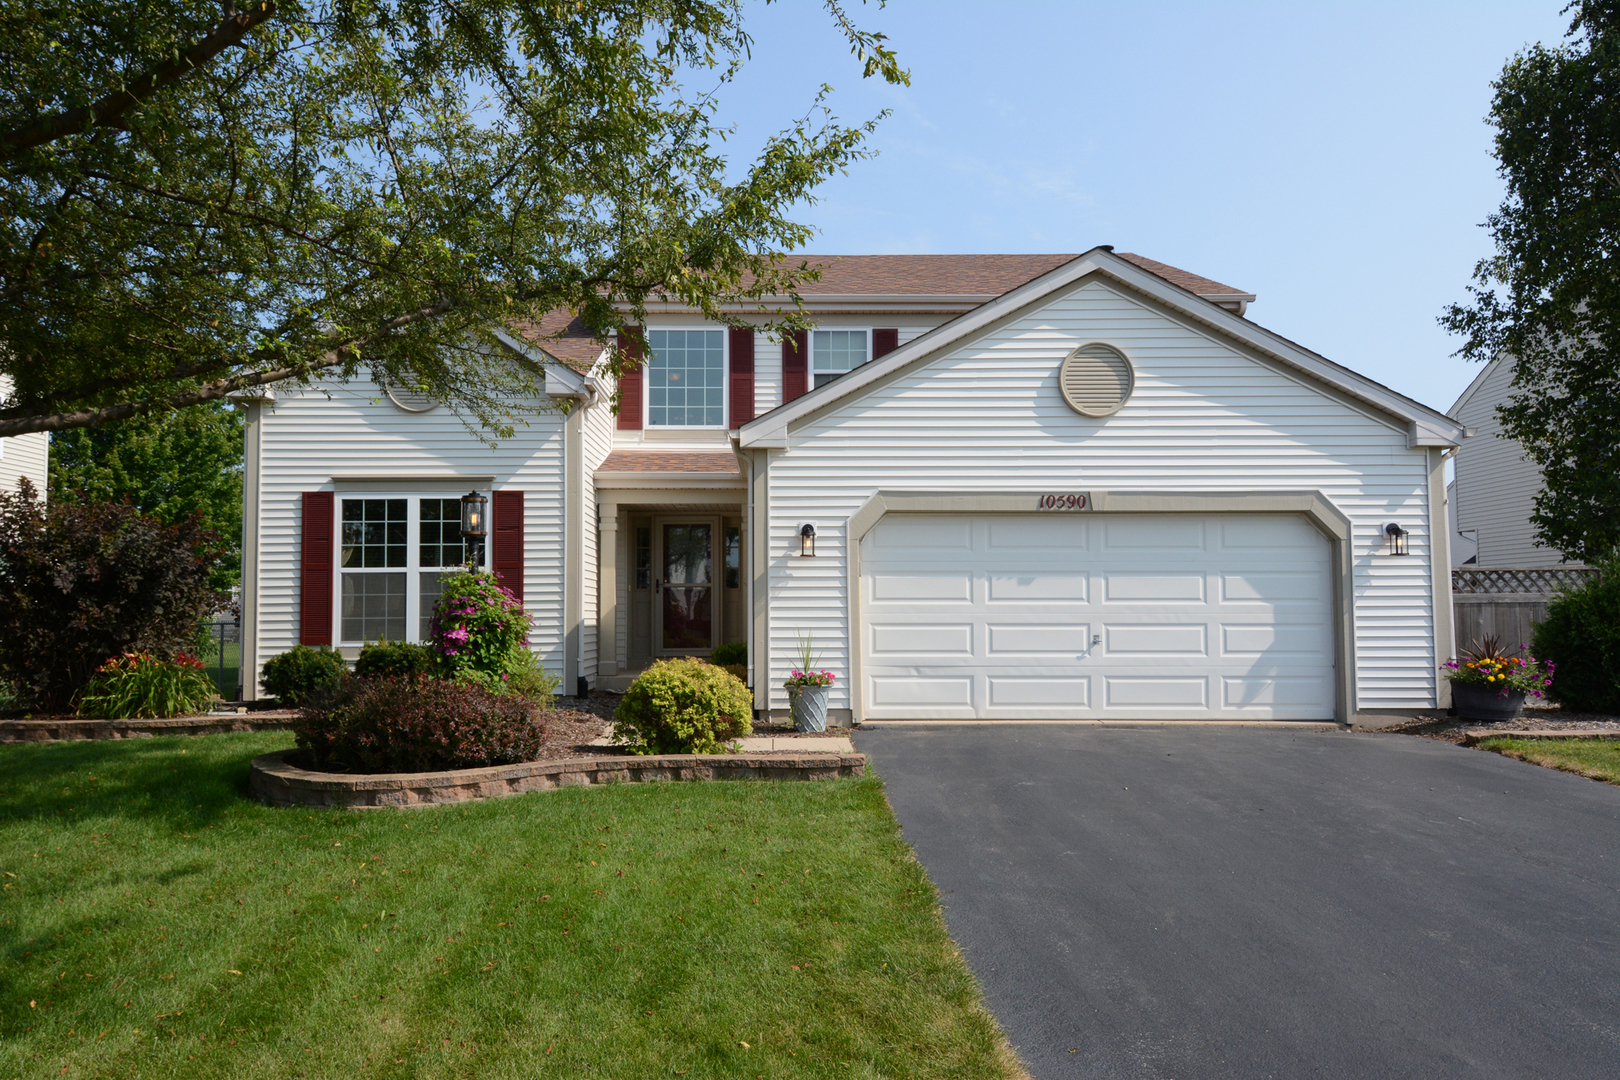 Photo for 10590 Wing Pointe Drive, Huntley, IL 60142 (MLS # 10547891)